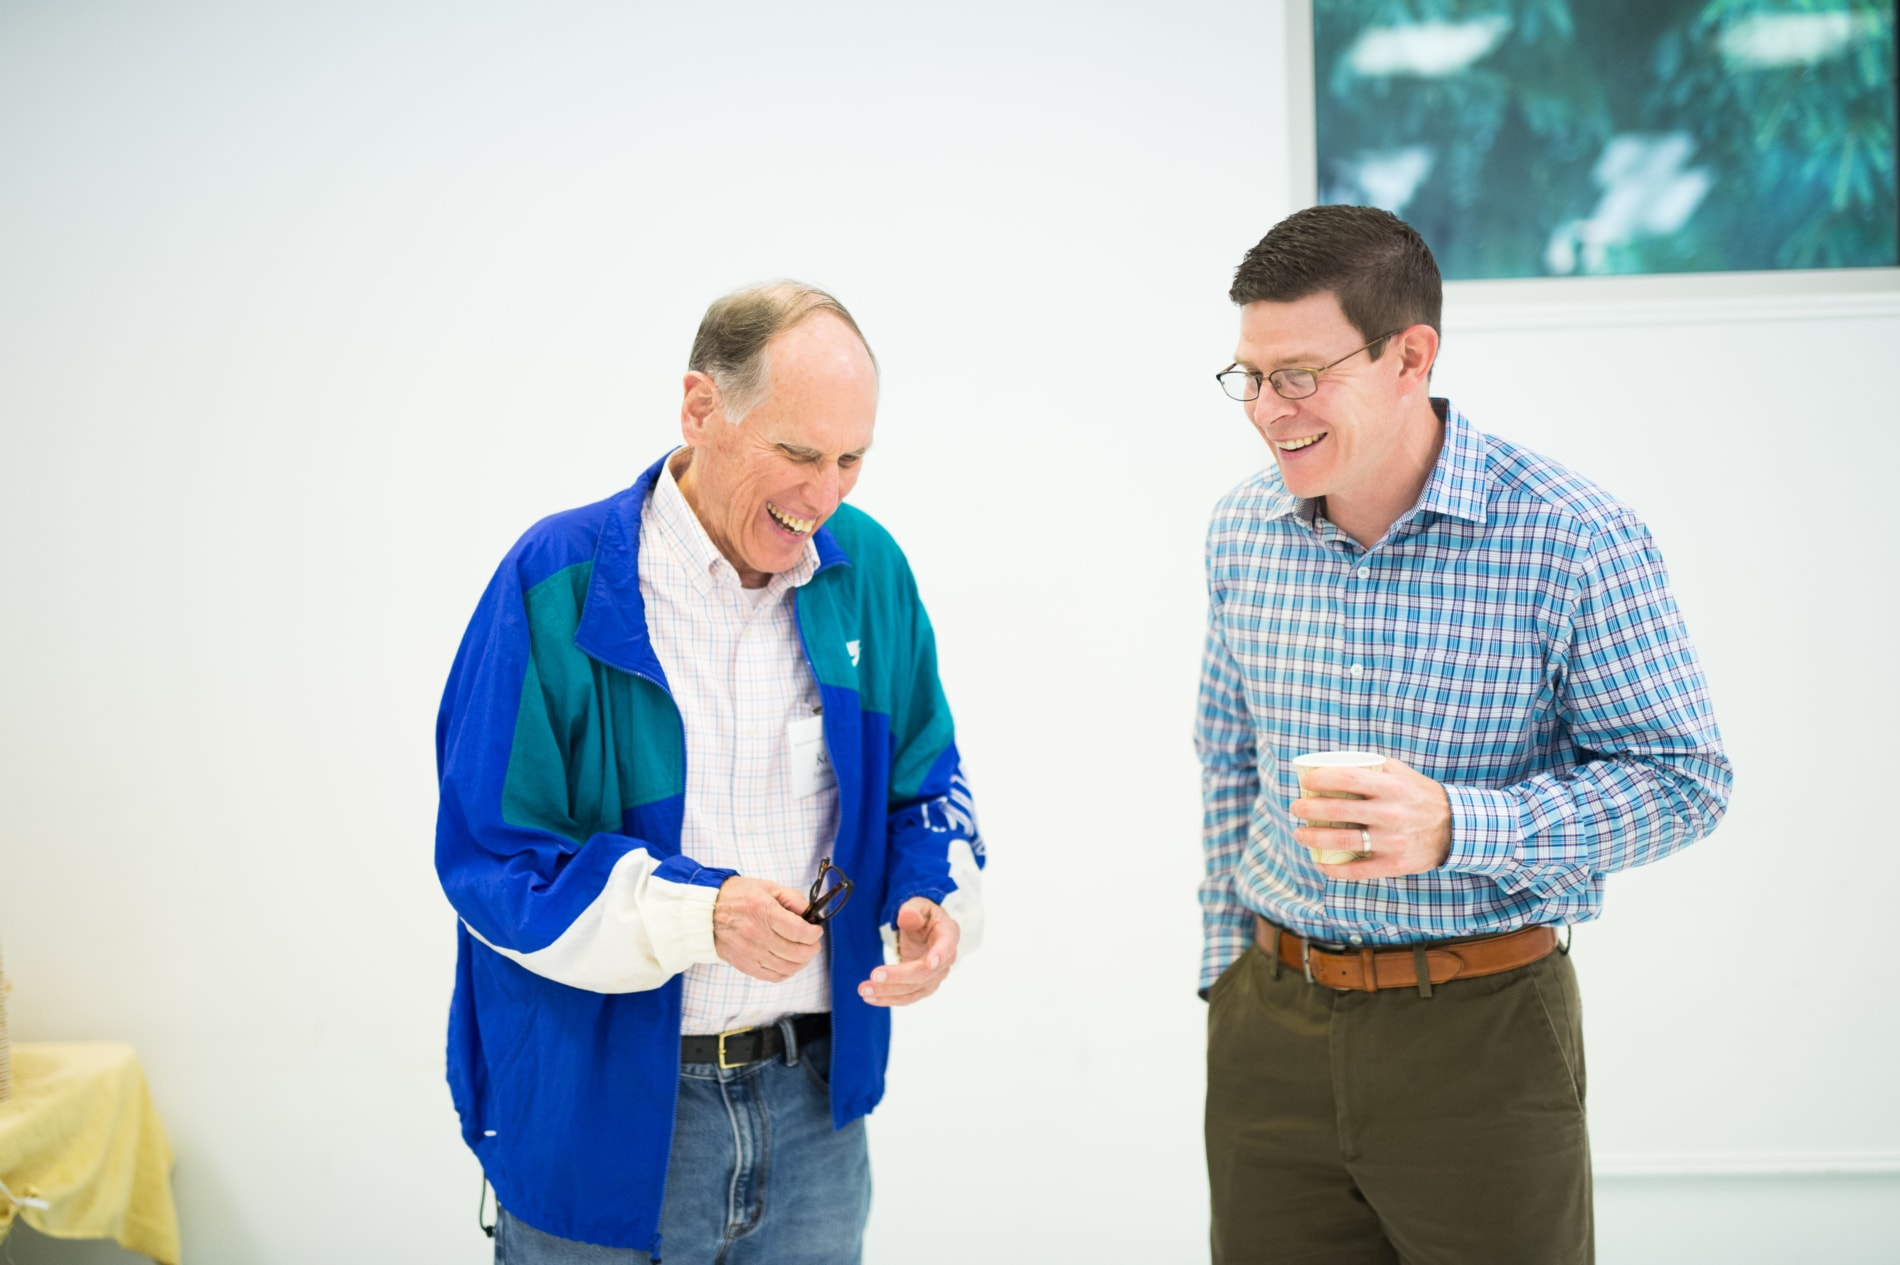 An older man and a younger man stand inside drinking coffee and laughing.